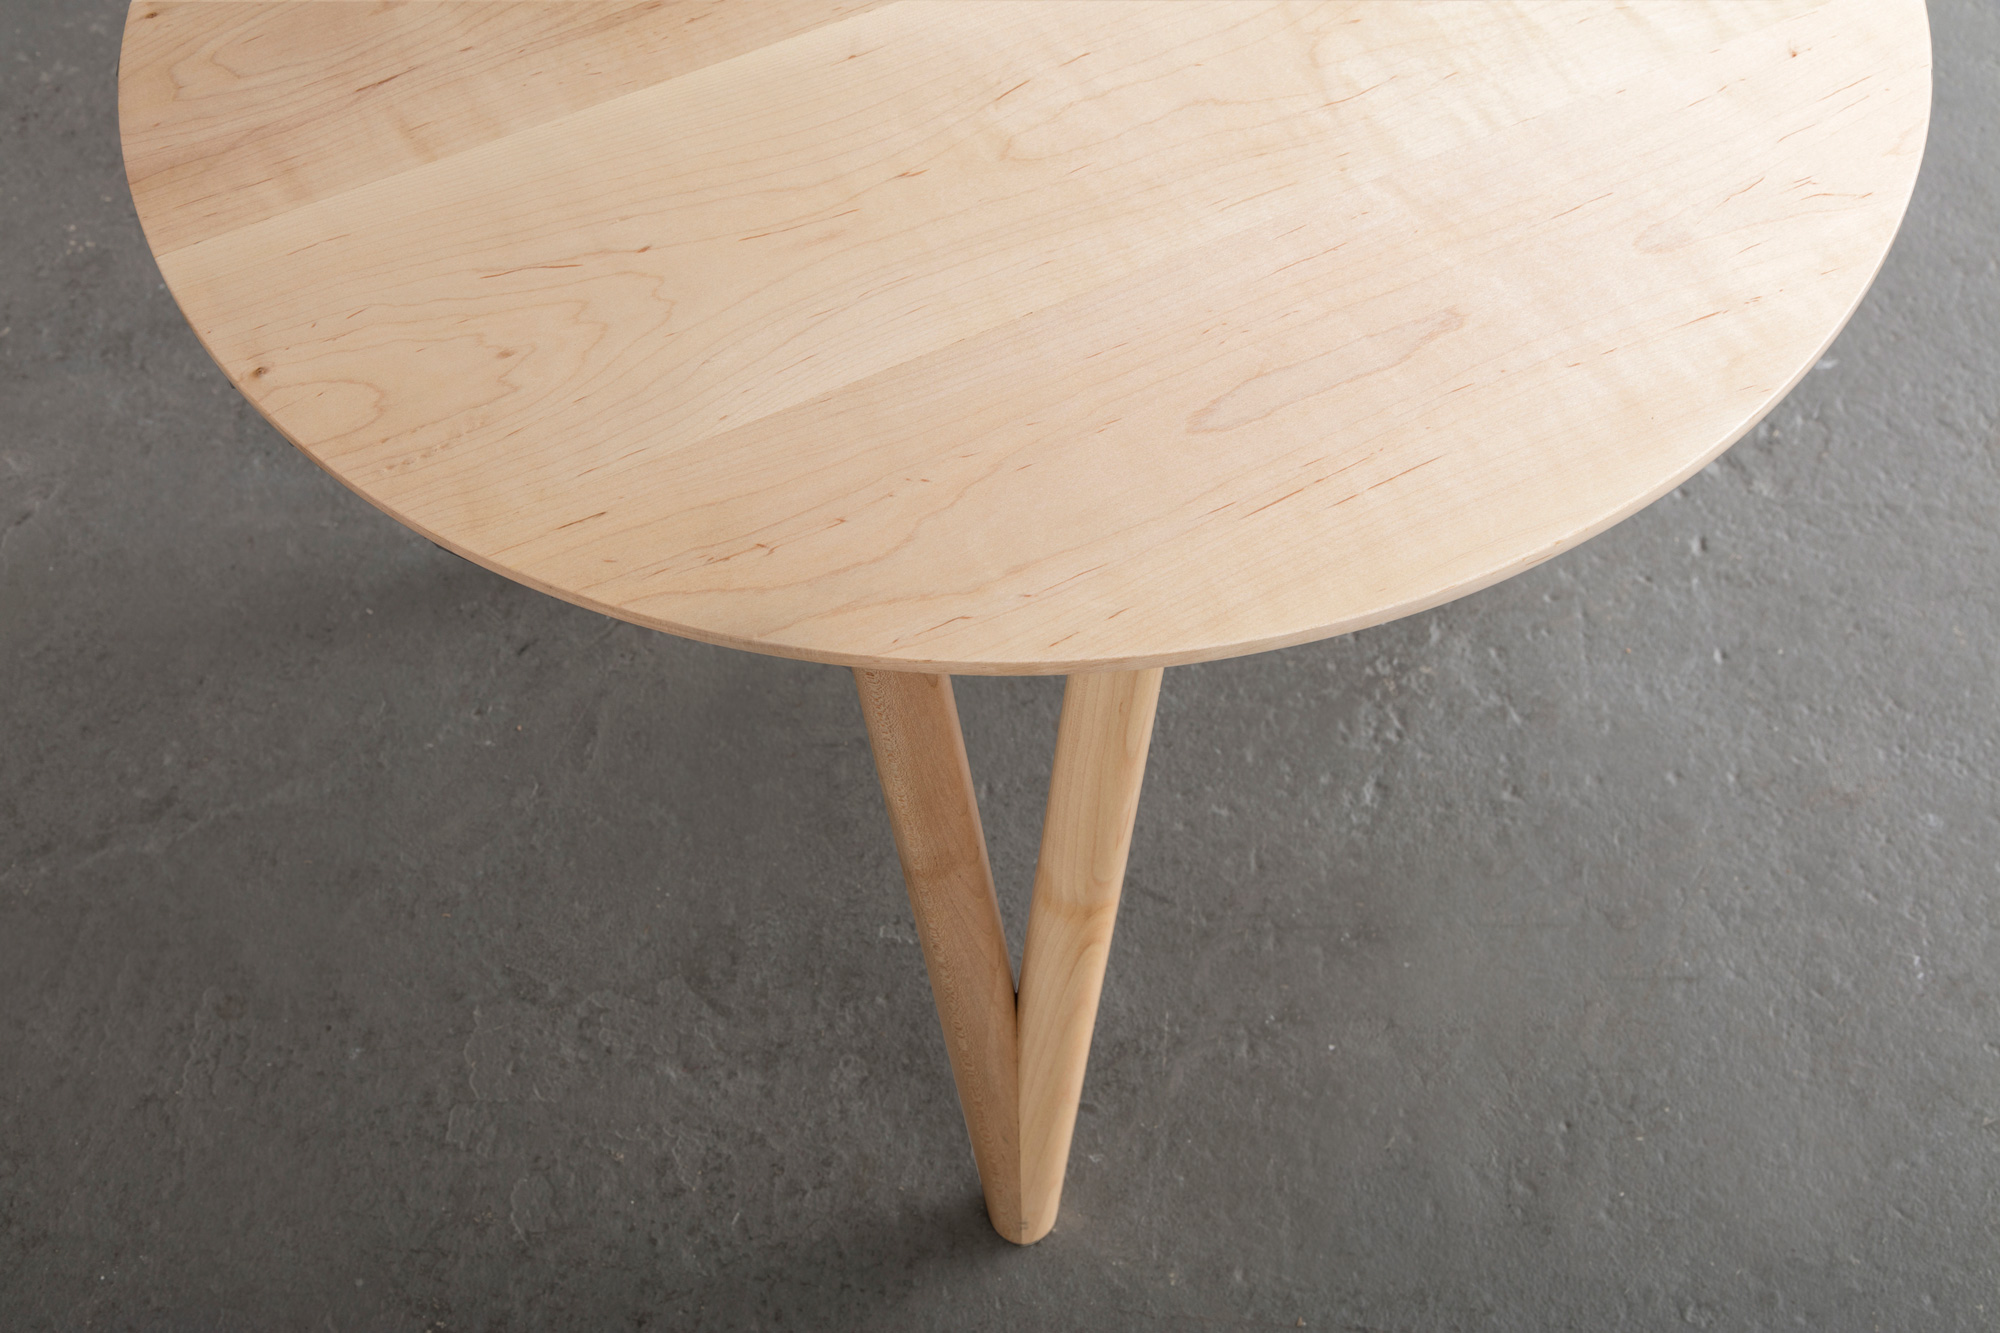 Hair Pin End Table by David Gaynor Design